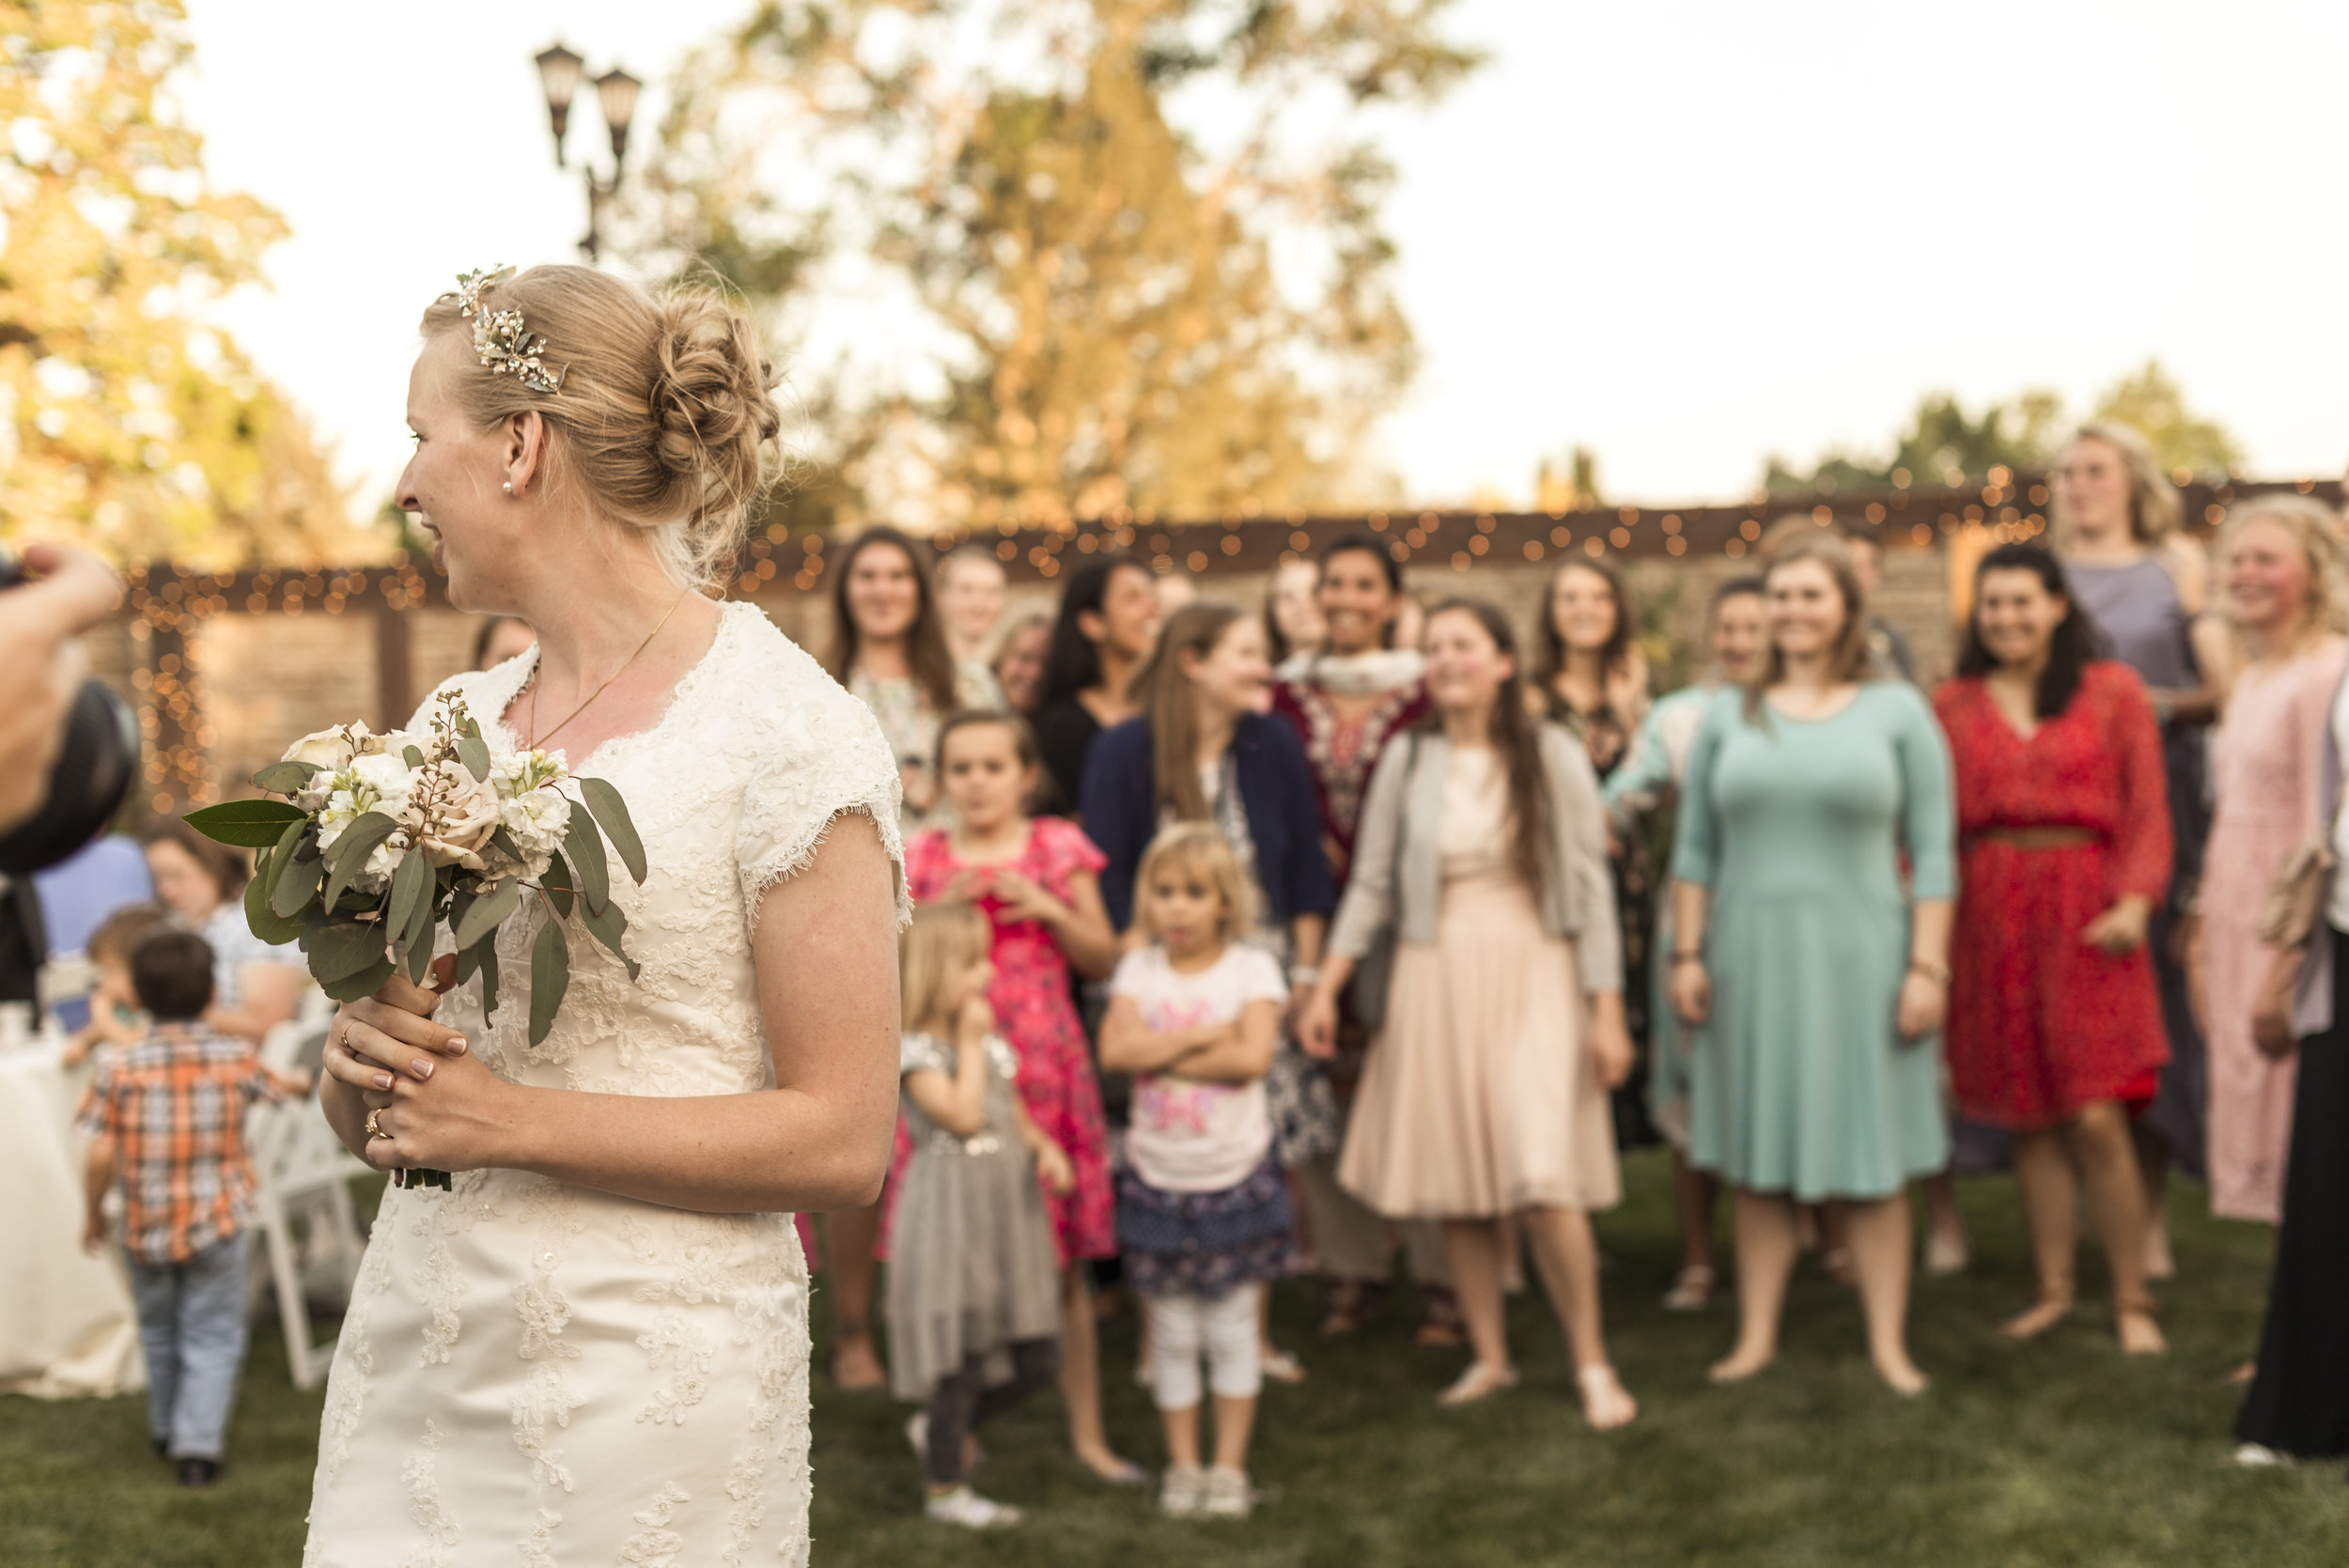 LDS Summer Wedding | South Jordan, Utah Wedding Photographer| Bri Bergman Photography 22.JPG